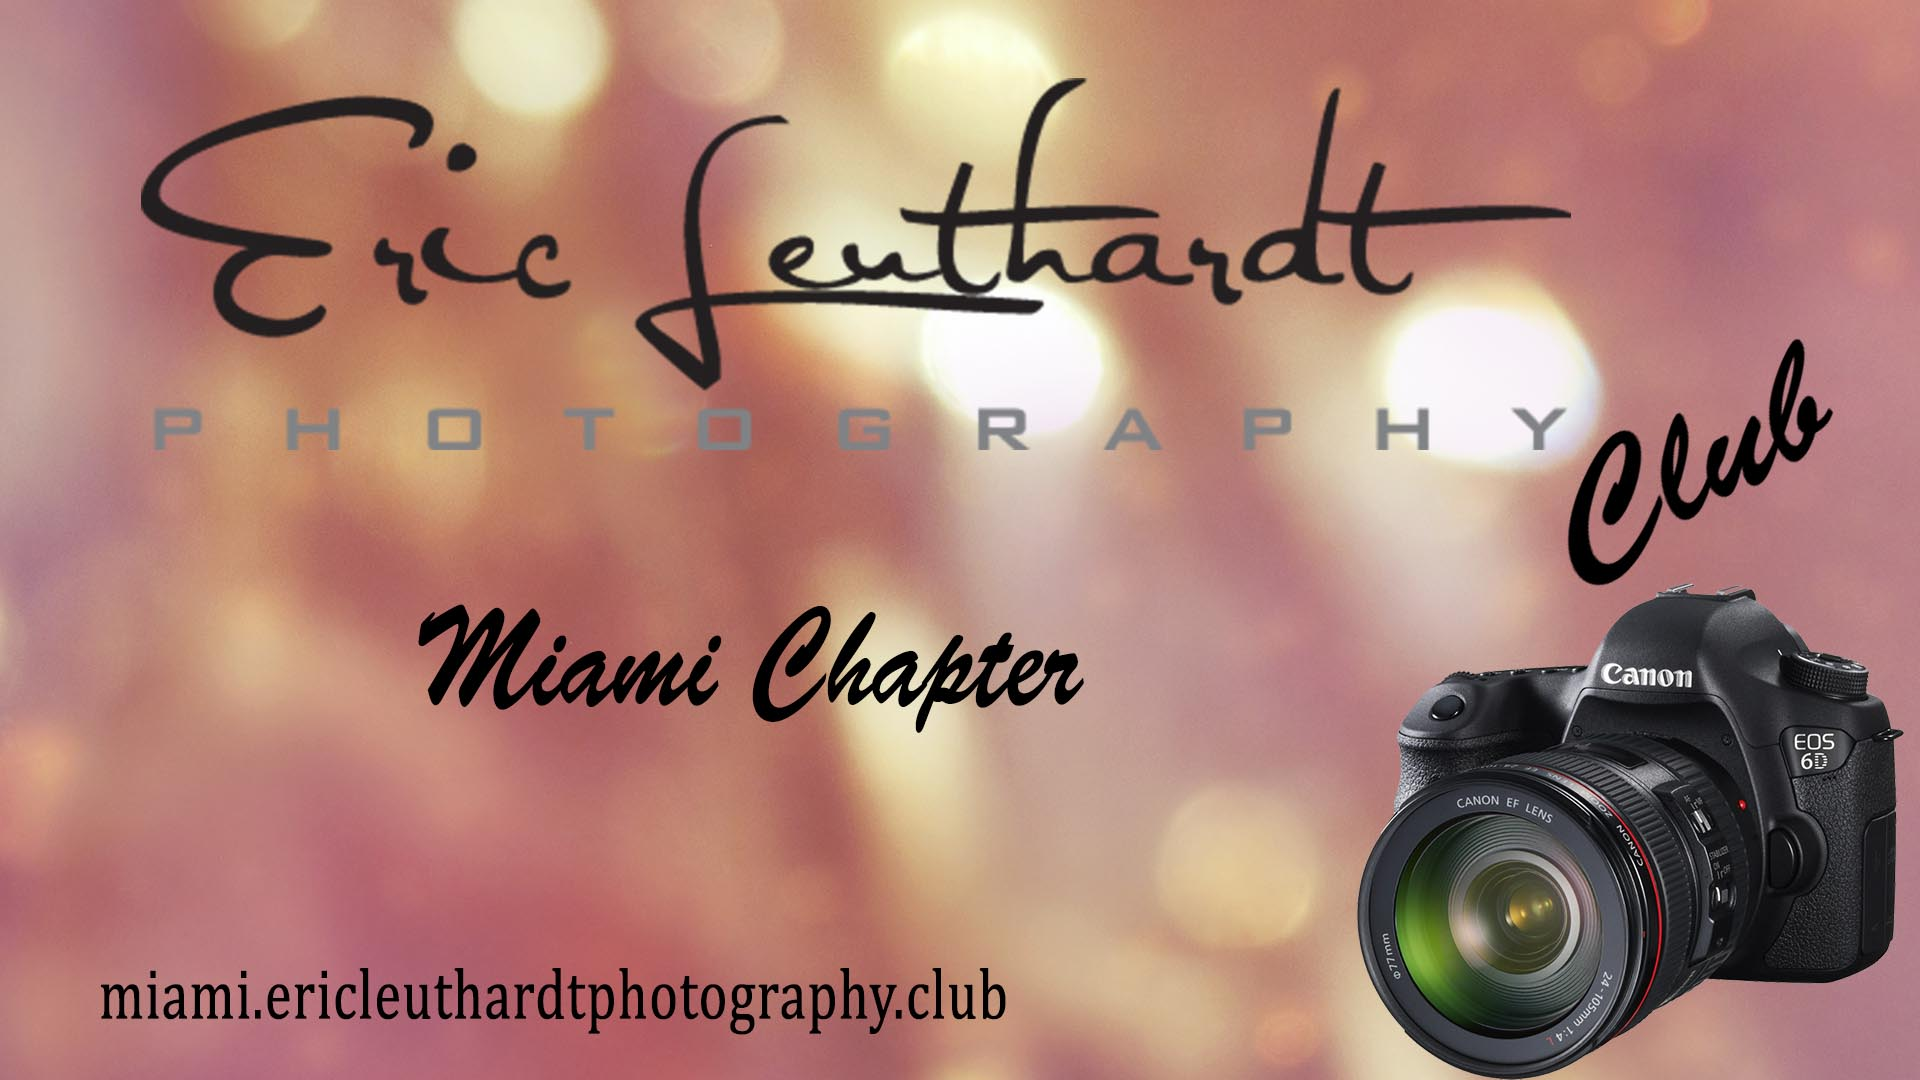 Eric Leuthardt Photography Club - Miami